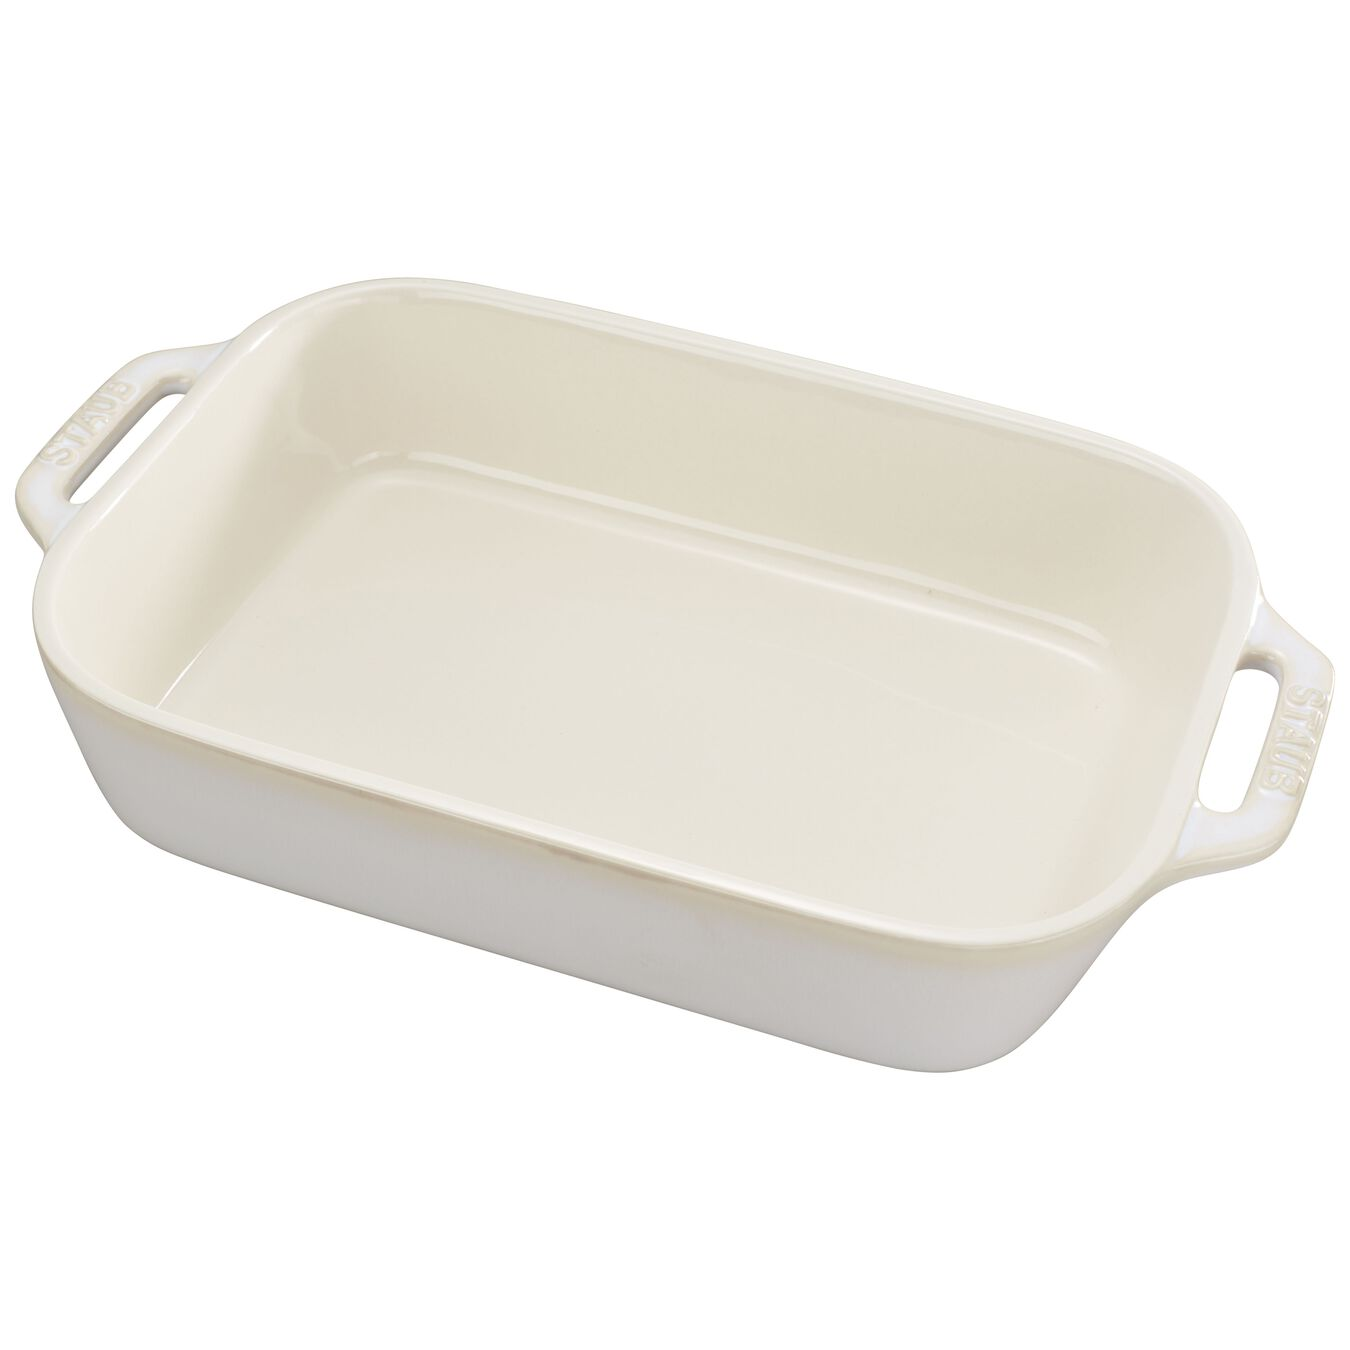 10.5-inch x 7.5-inch Rectangular Baking Dish - Rustic Ivory,,large 2